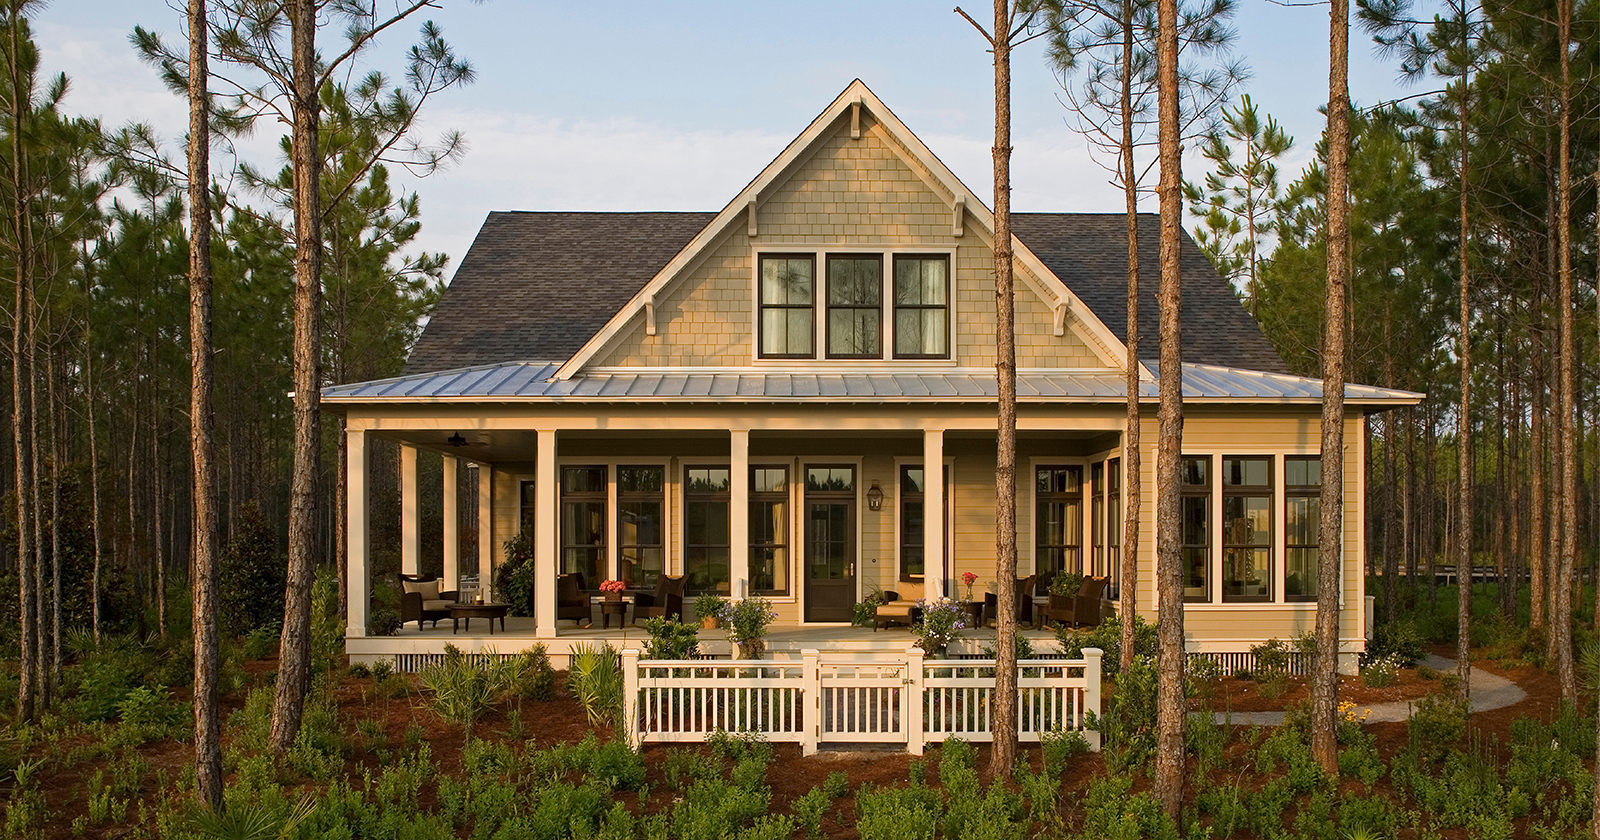 Southern Living Idea House, Tucker Bayou, WaterSound, Santa Rosa Beach, FL